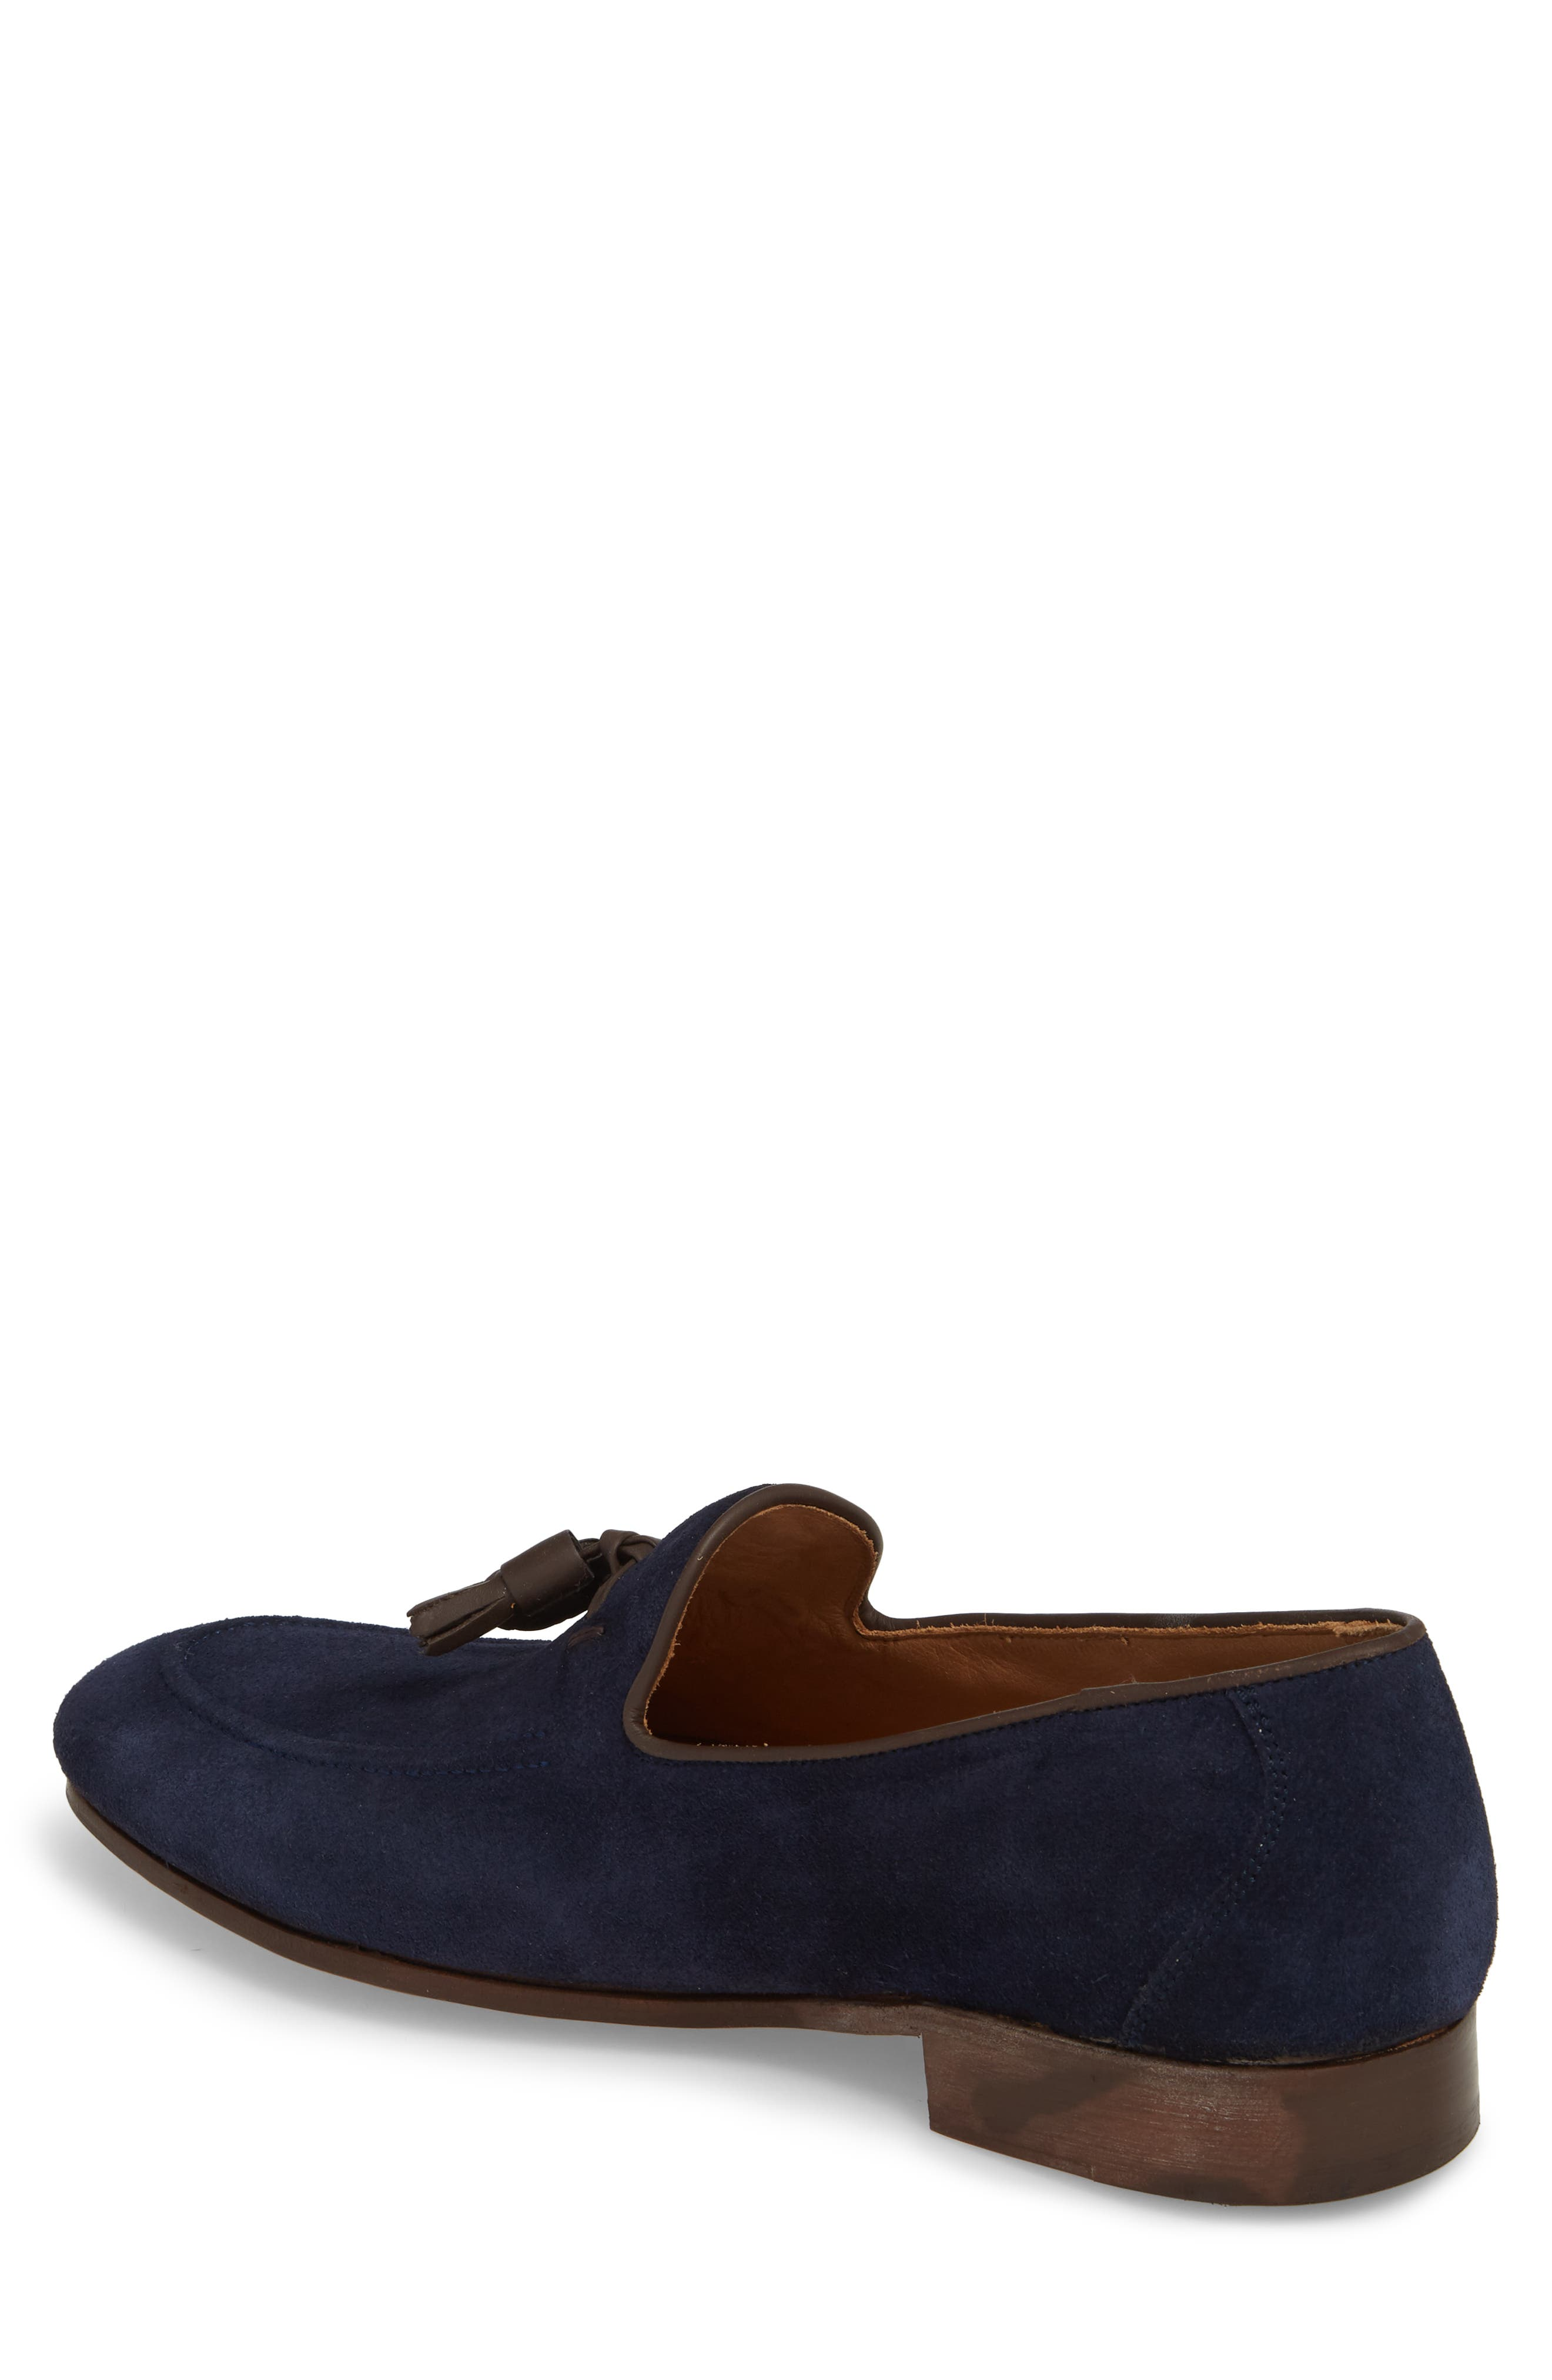 Ario Tassel Loafer,                             Alternate thumbnail 2, color,                             NAVY SUEDE